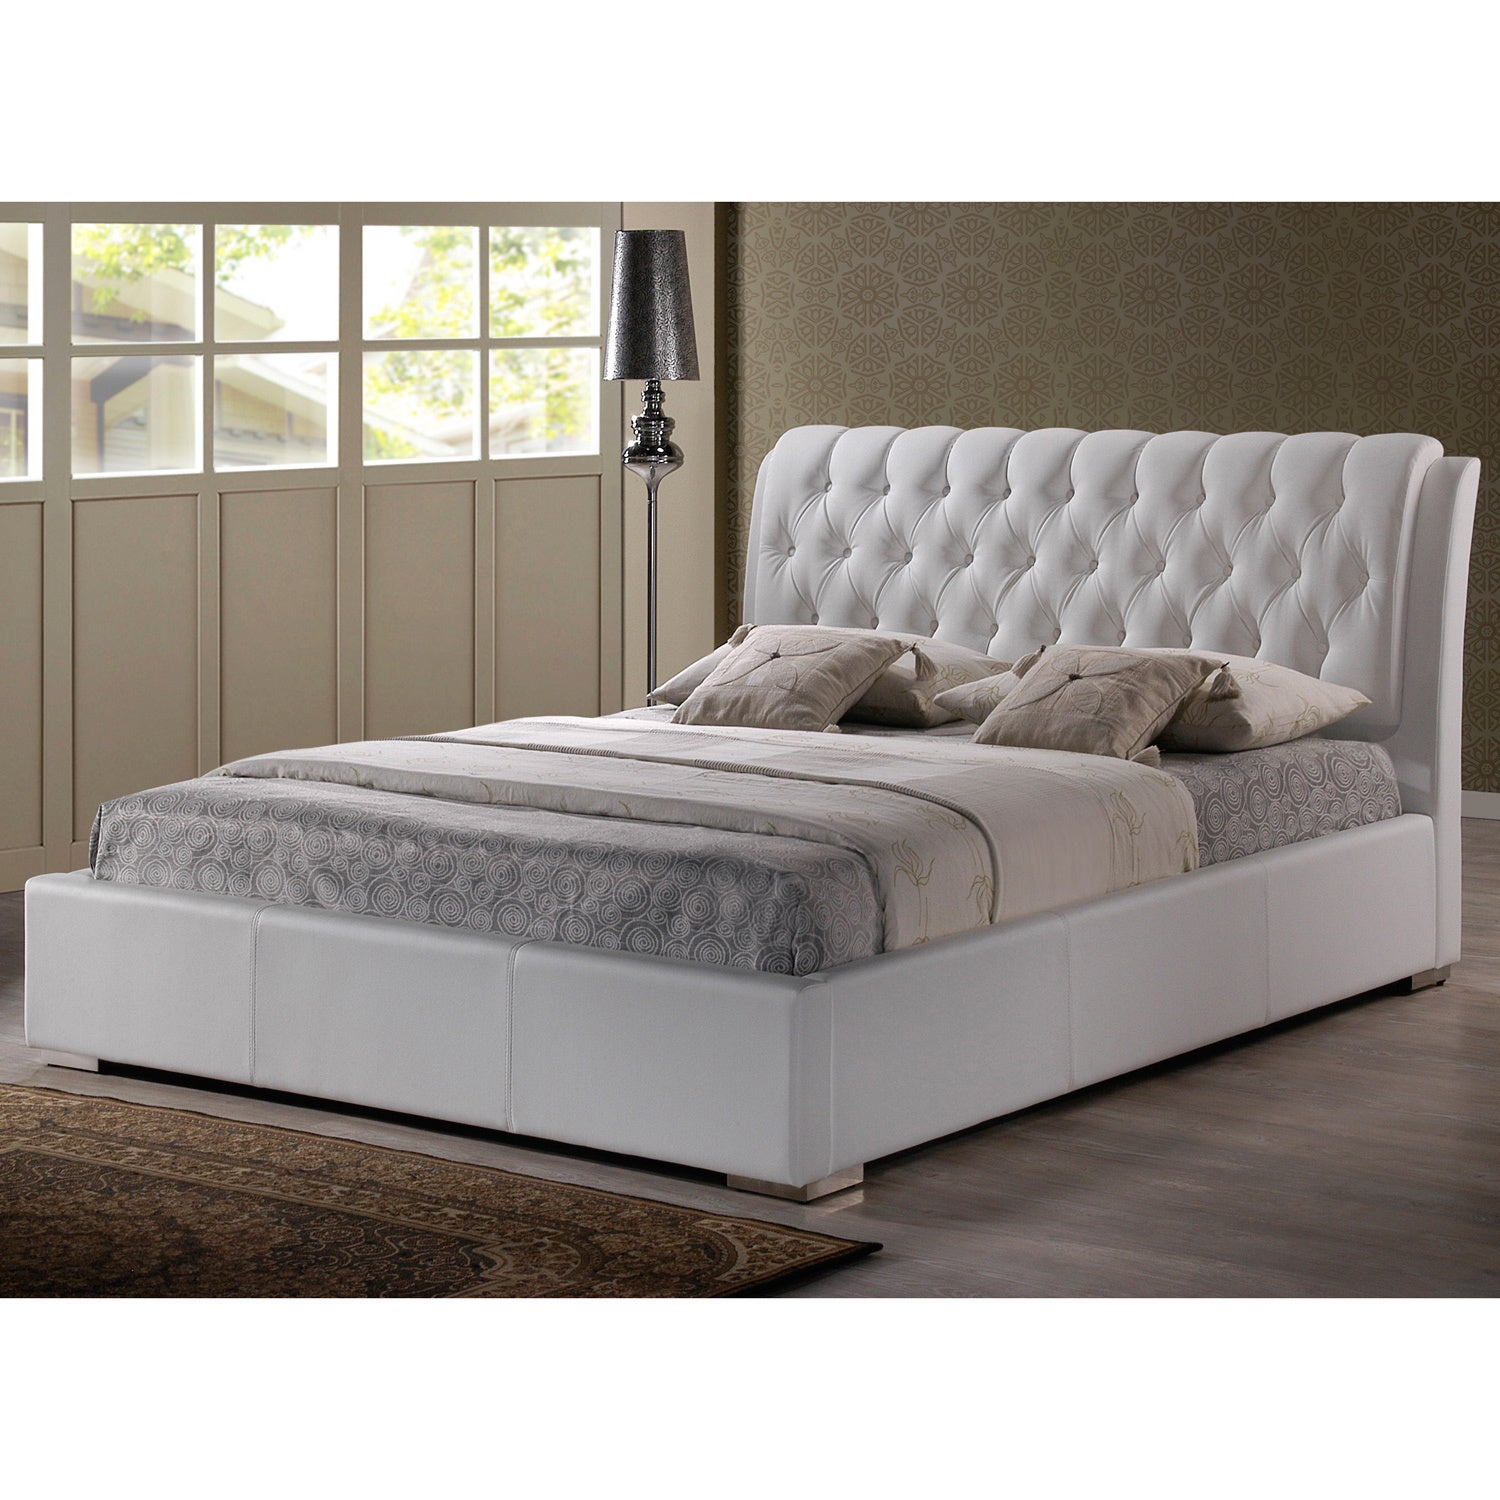 Baxton Studio Bianca White Modern Bed With Tufted Headboard Full Size Free Shipping Today 20543392